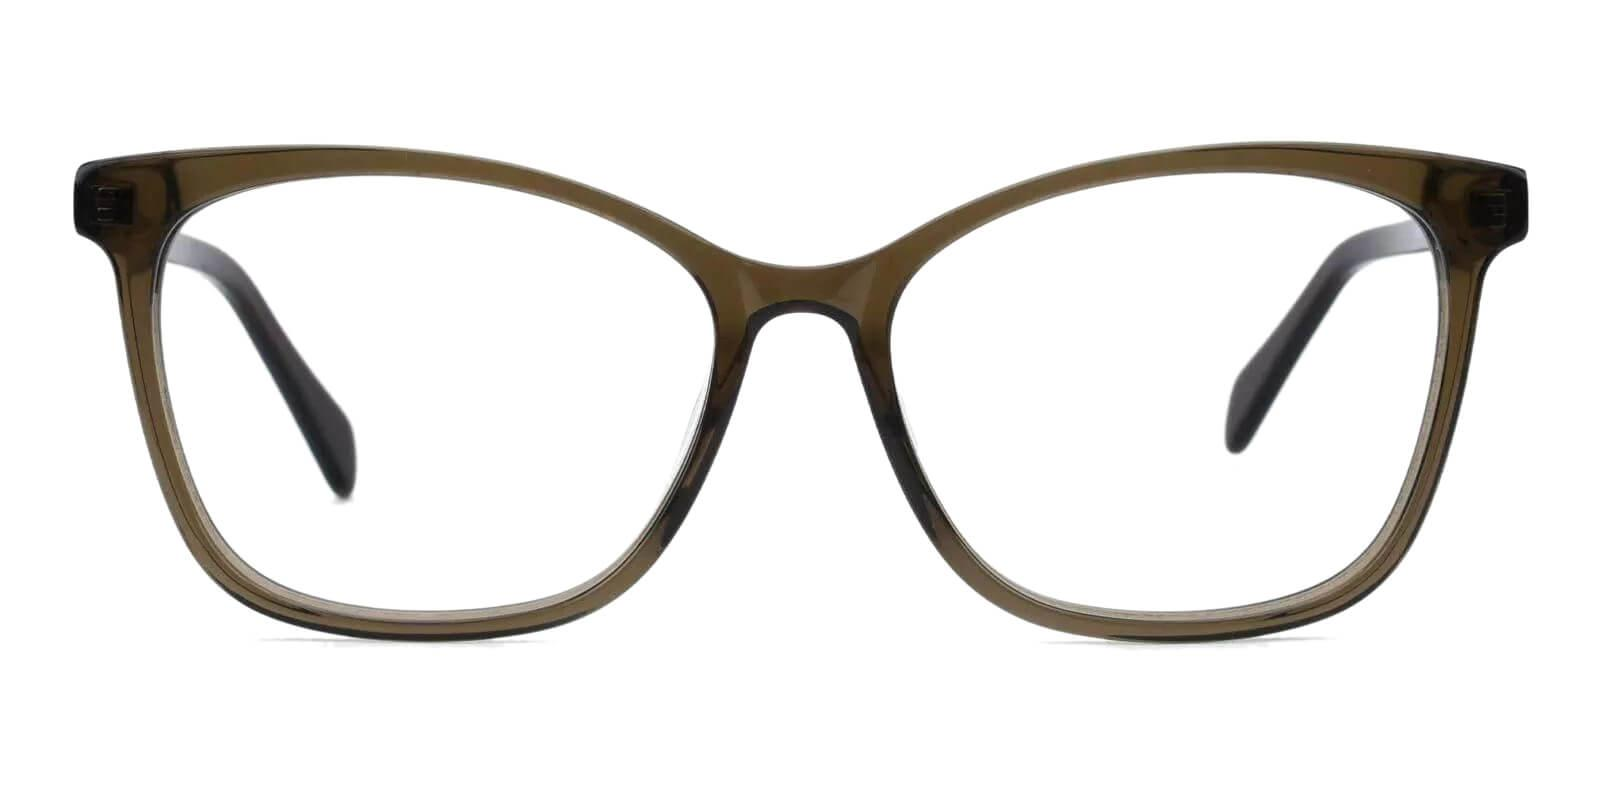 Coliny Green Acetate Eyeglasses , Fashion , SpringHinges , UniversalBridgeFit Frames from ABBE Glasses